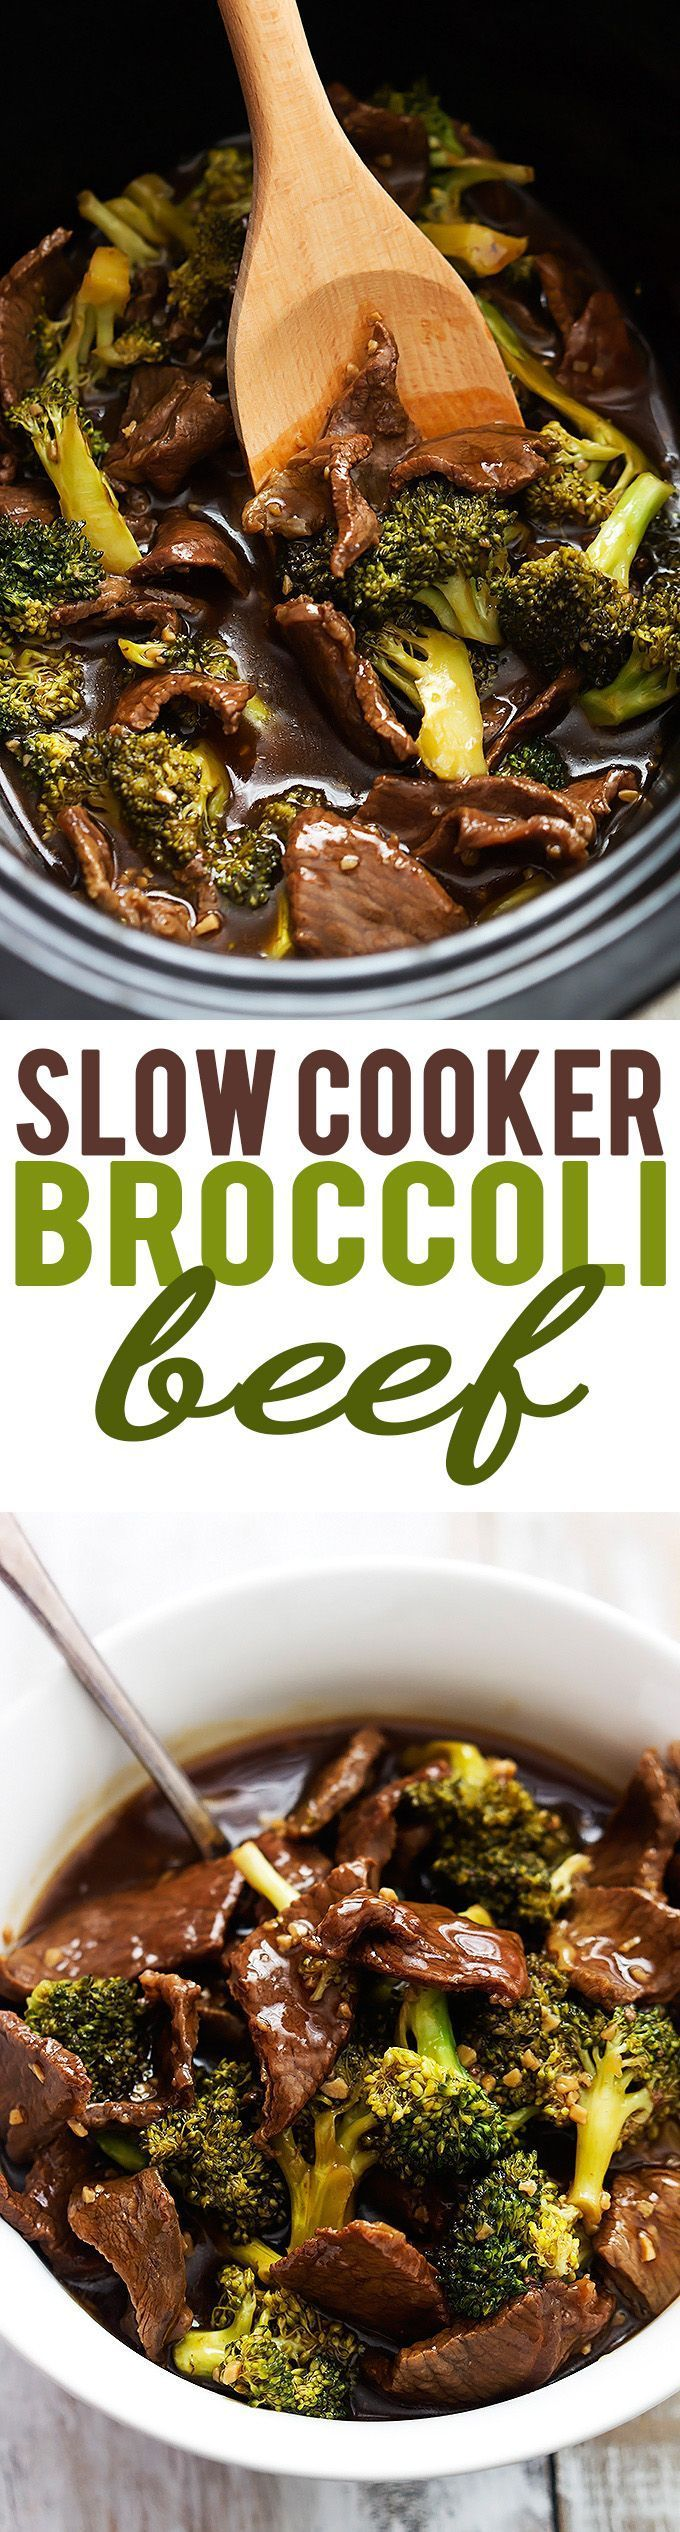 Super easy Slow Cooker Broccoli Beef! The sauce is AMAZING  so much better tasting and healthier than takeout!   | Creme de la Crumb